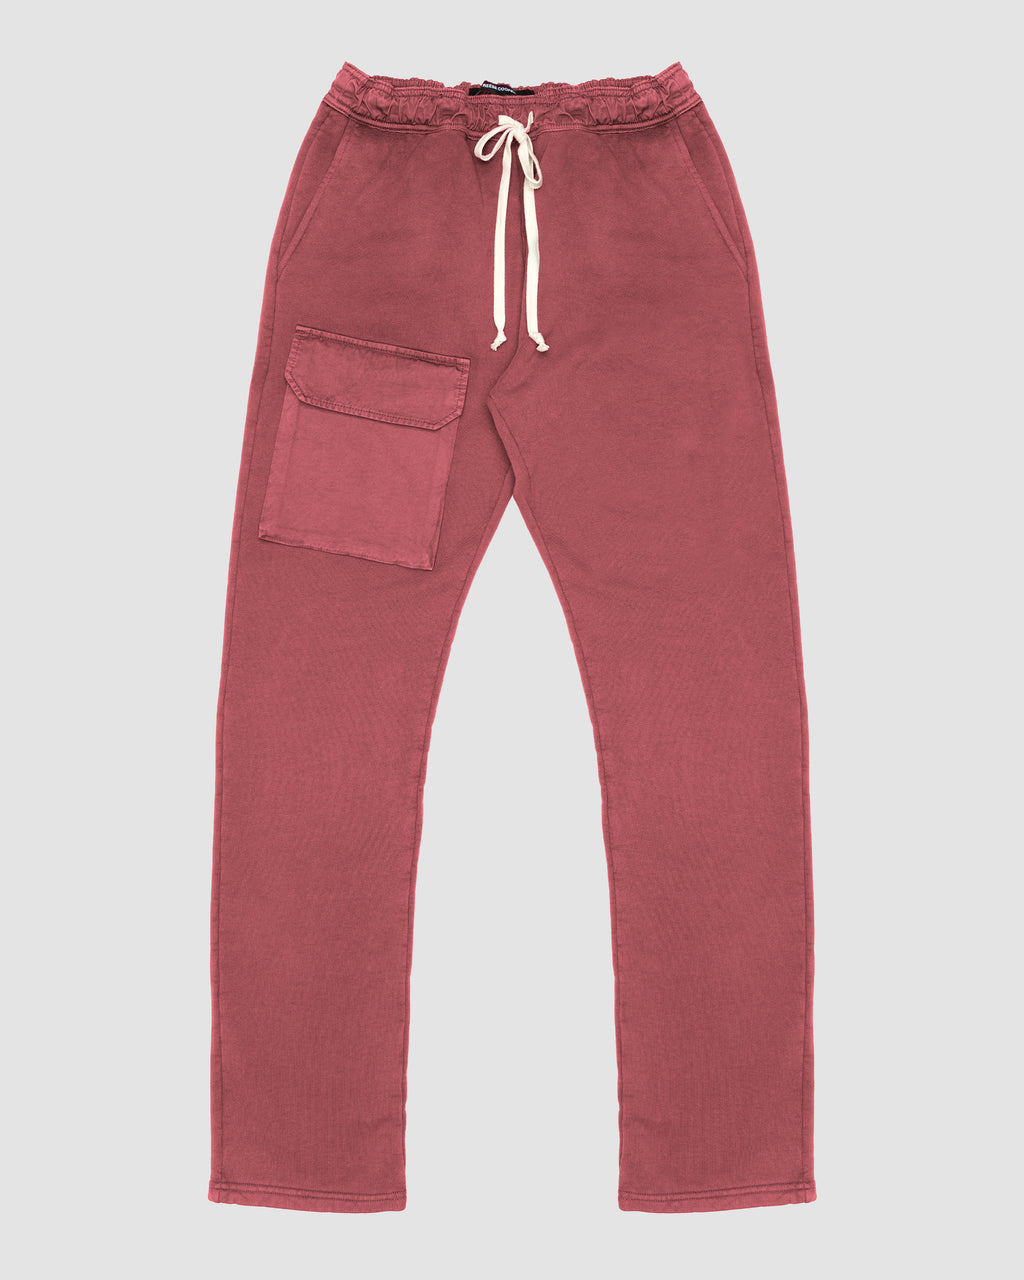 Patch Pocket Sweatpant in Red